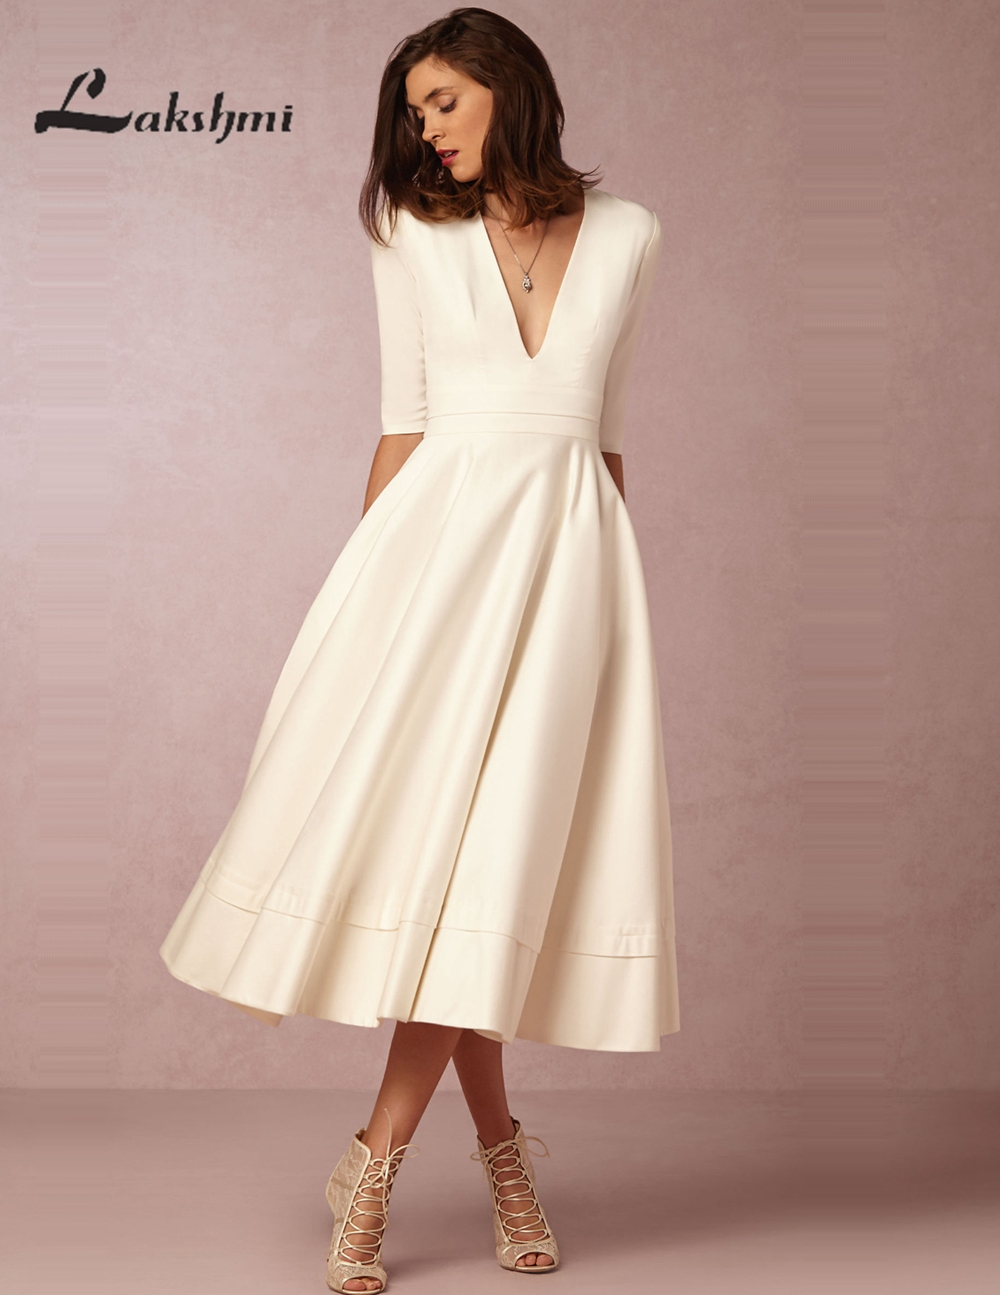 wedding reception dress for bride reception wedding dresses buy hot new arrival backless chiffon high collar a line beach wedding dresses gowns bridal wedding reception